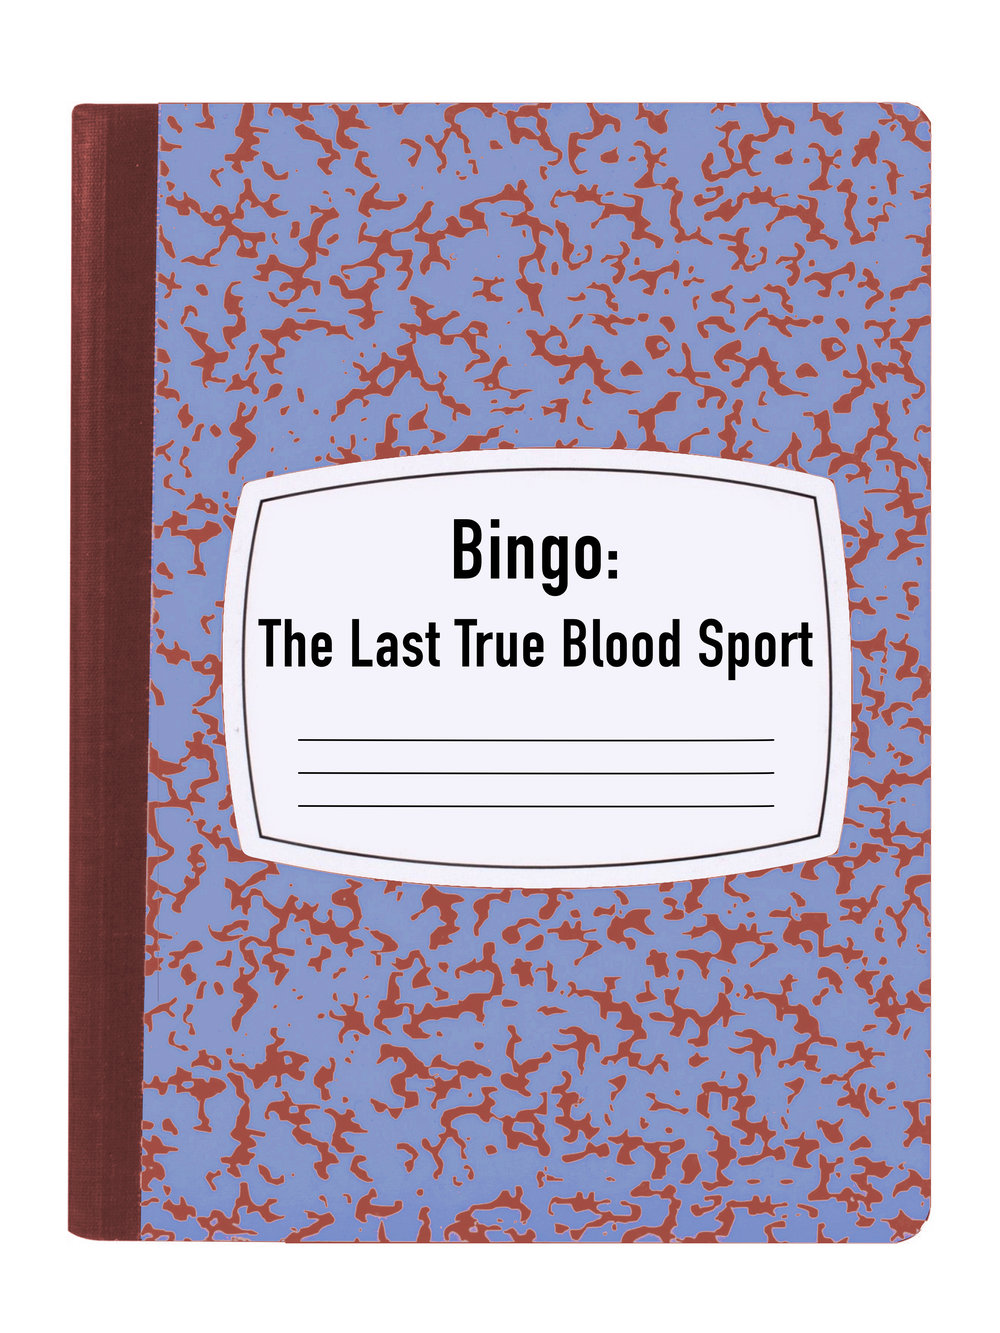 BINGO: THE LAST TRUE BLOOD SPORT